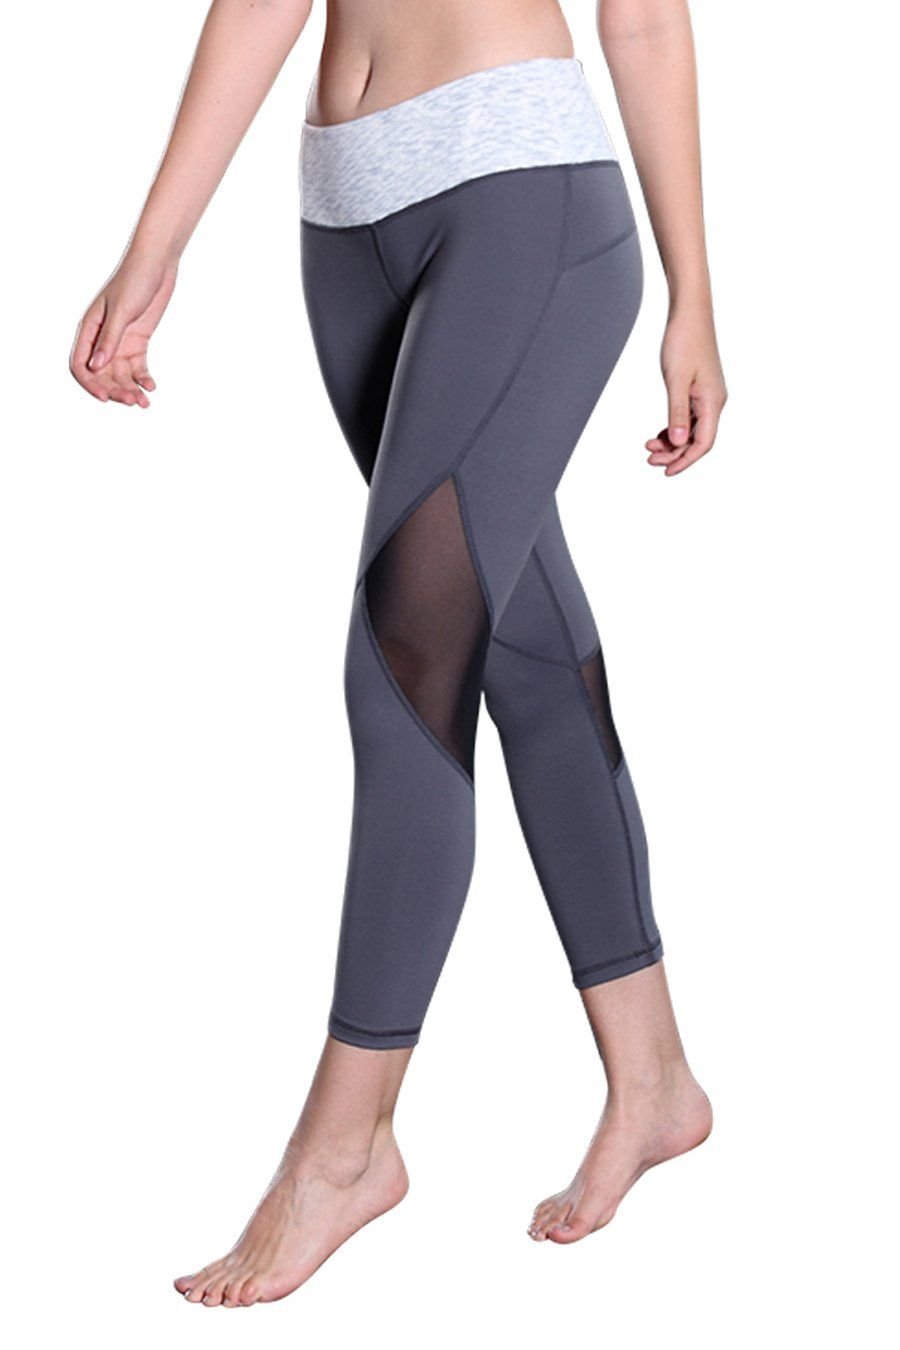 480a4af1450f2 Womens Mesh Yoga Legging Capri Pants Skinny Fitness Activewear Pants with Hidden  Pocket Dark Grey M